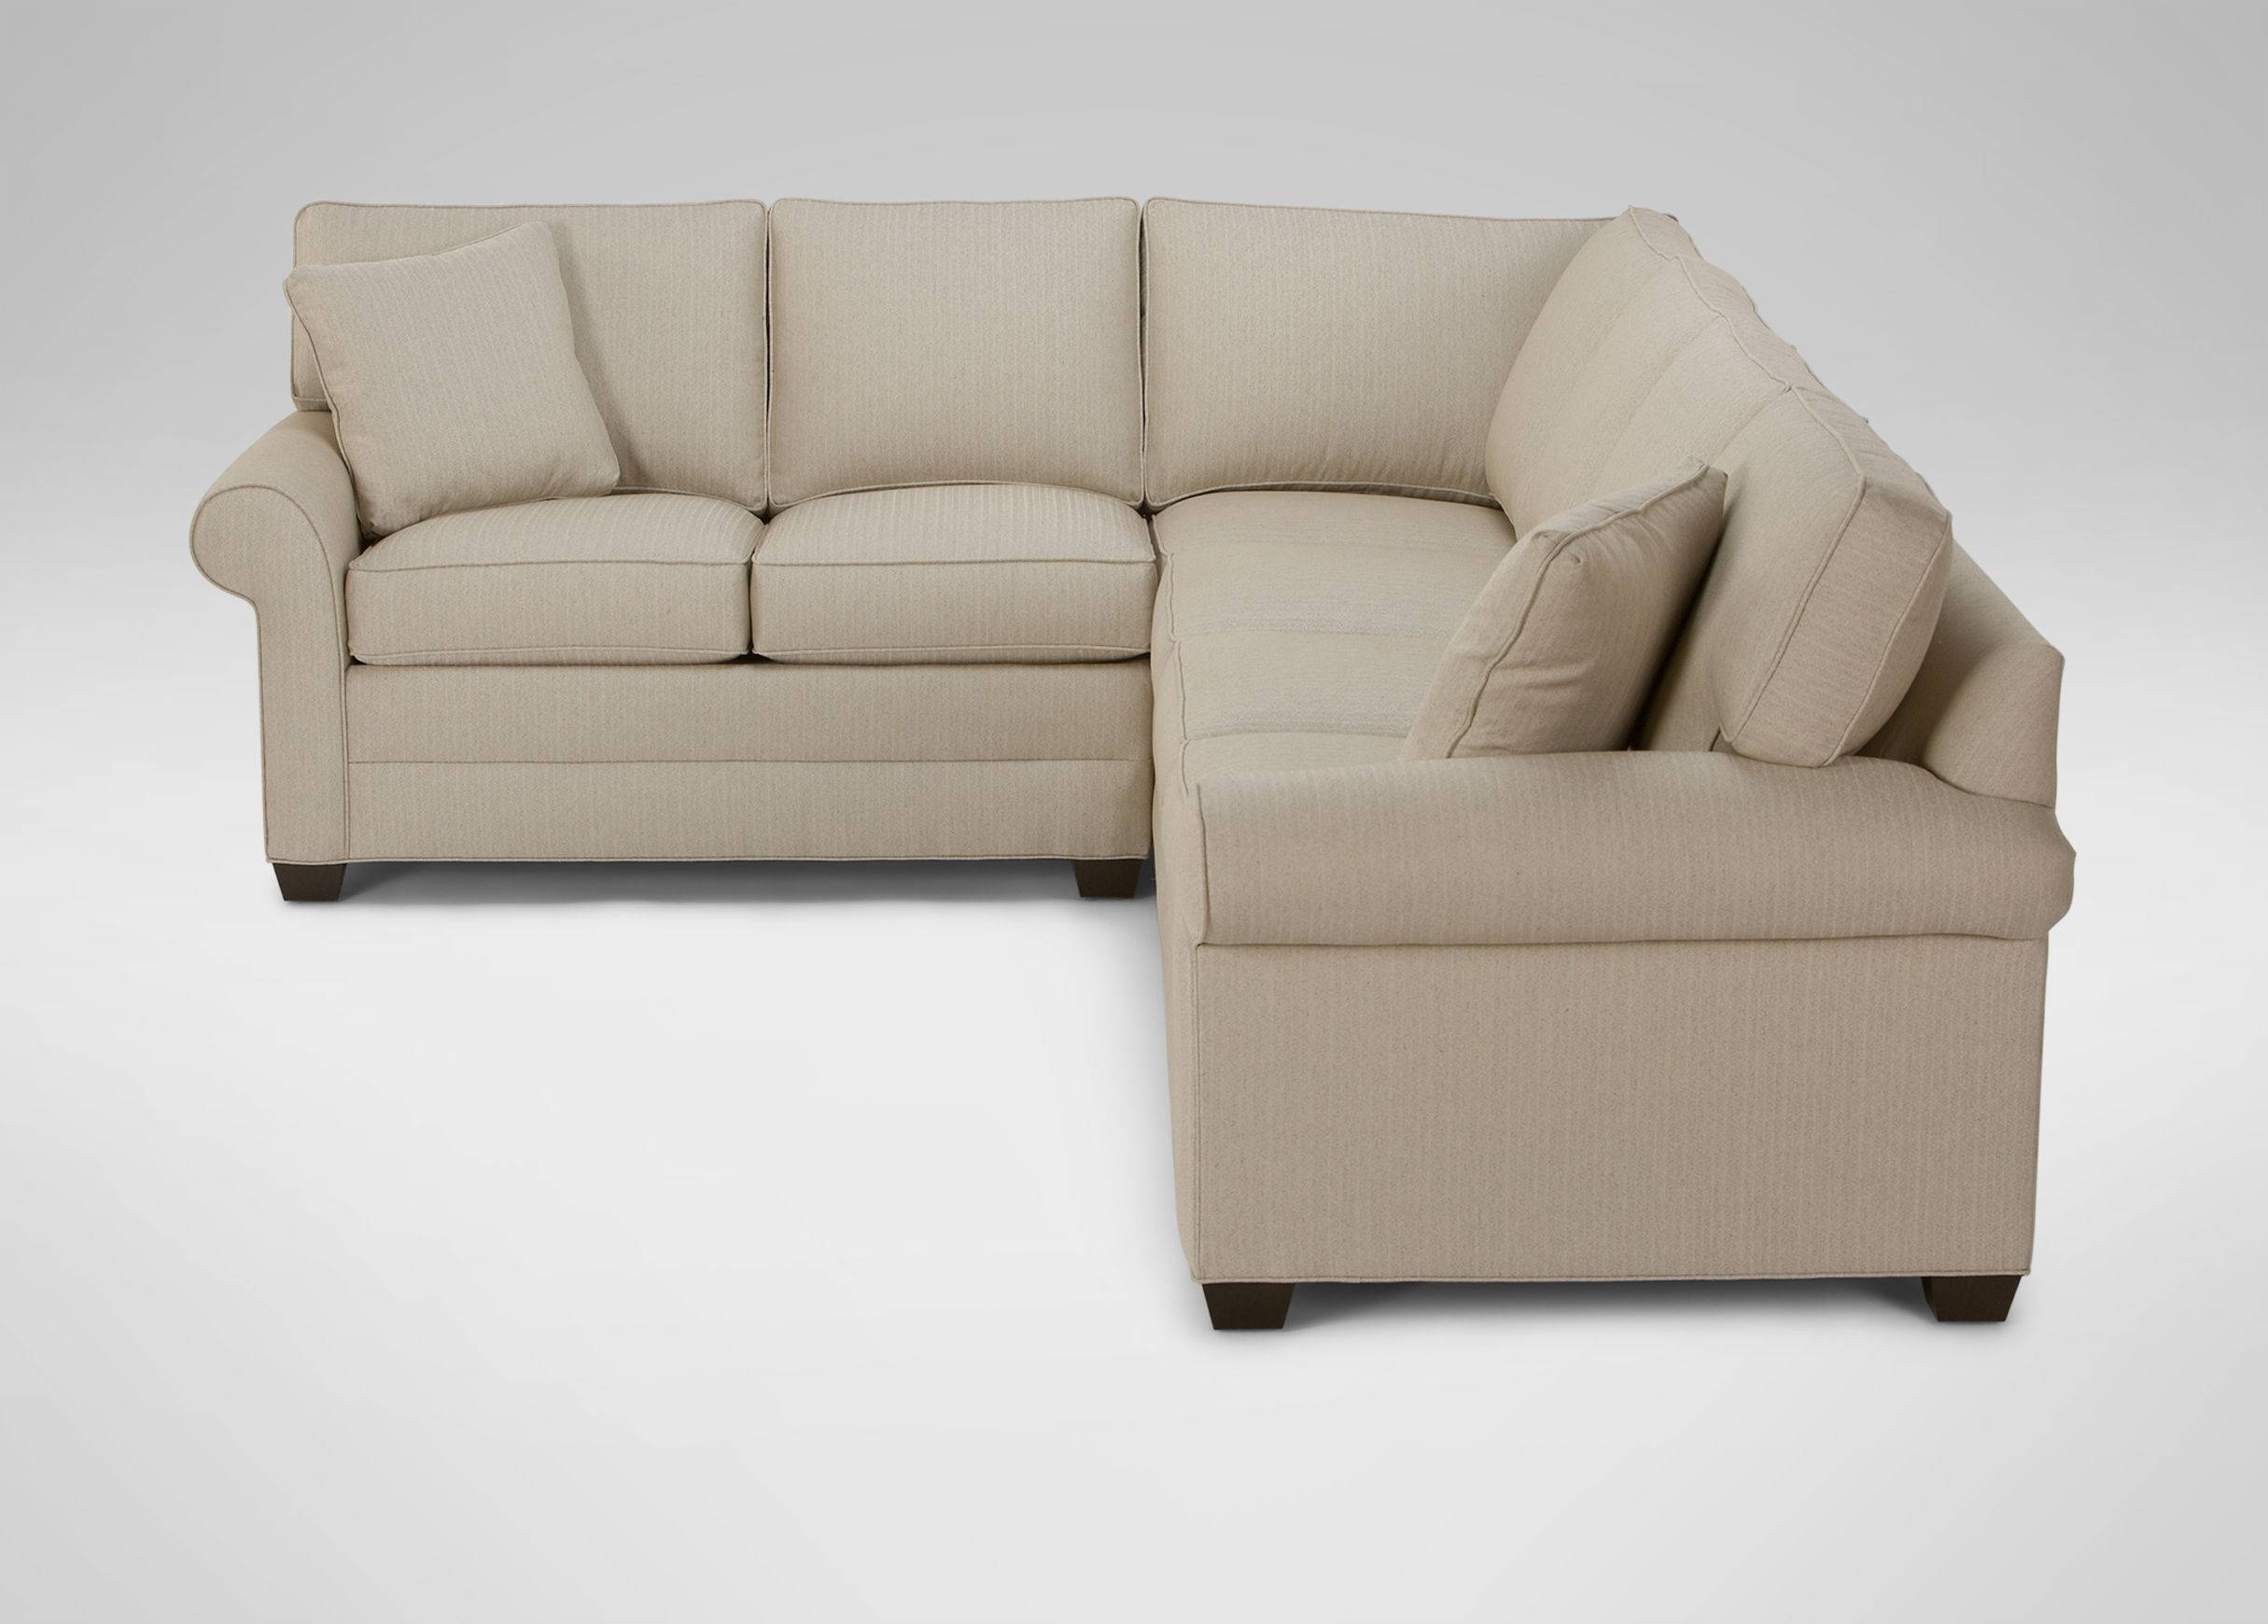 Furniture Home: Finest Ethan Allen Sectional Sleeper Sofas Design For Ethan Allen Sectional Sofas (View 8 of 15)